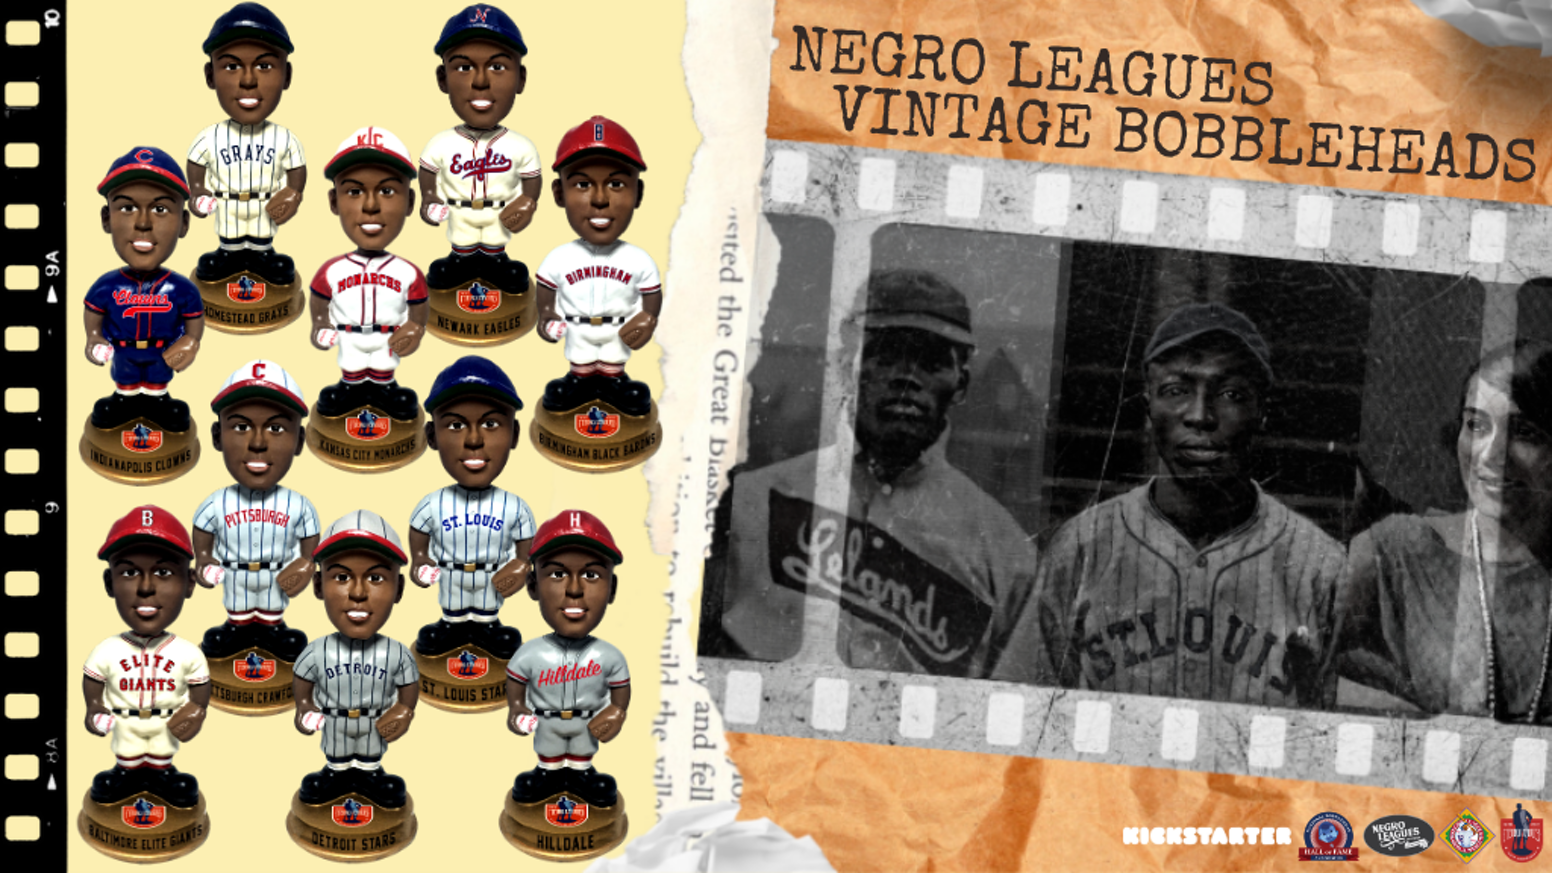 Celebrating the Negro Leagues through bobbleheads that will educate and inspire generations to come.